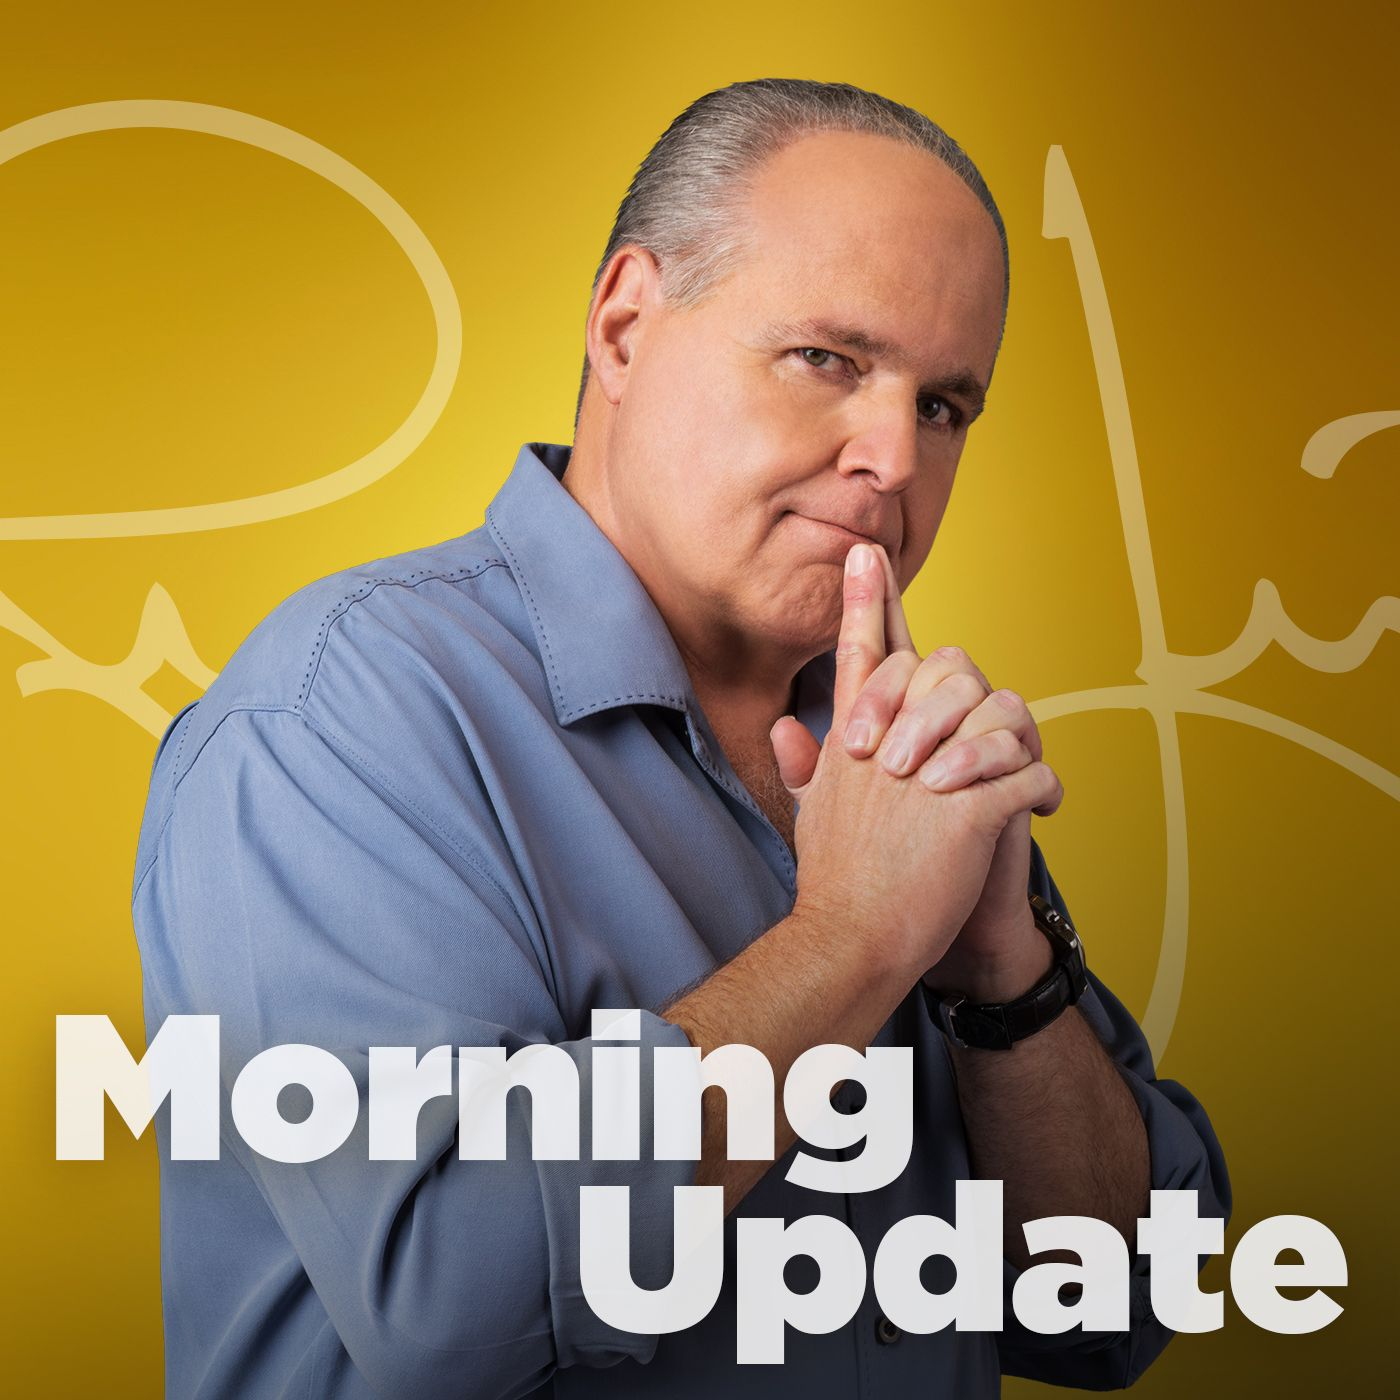 Rush Limbaugh Jun 18, 2020